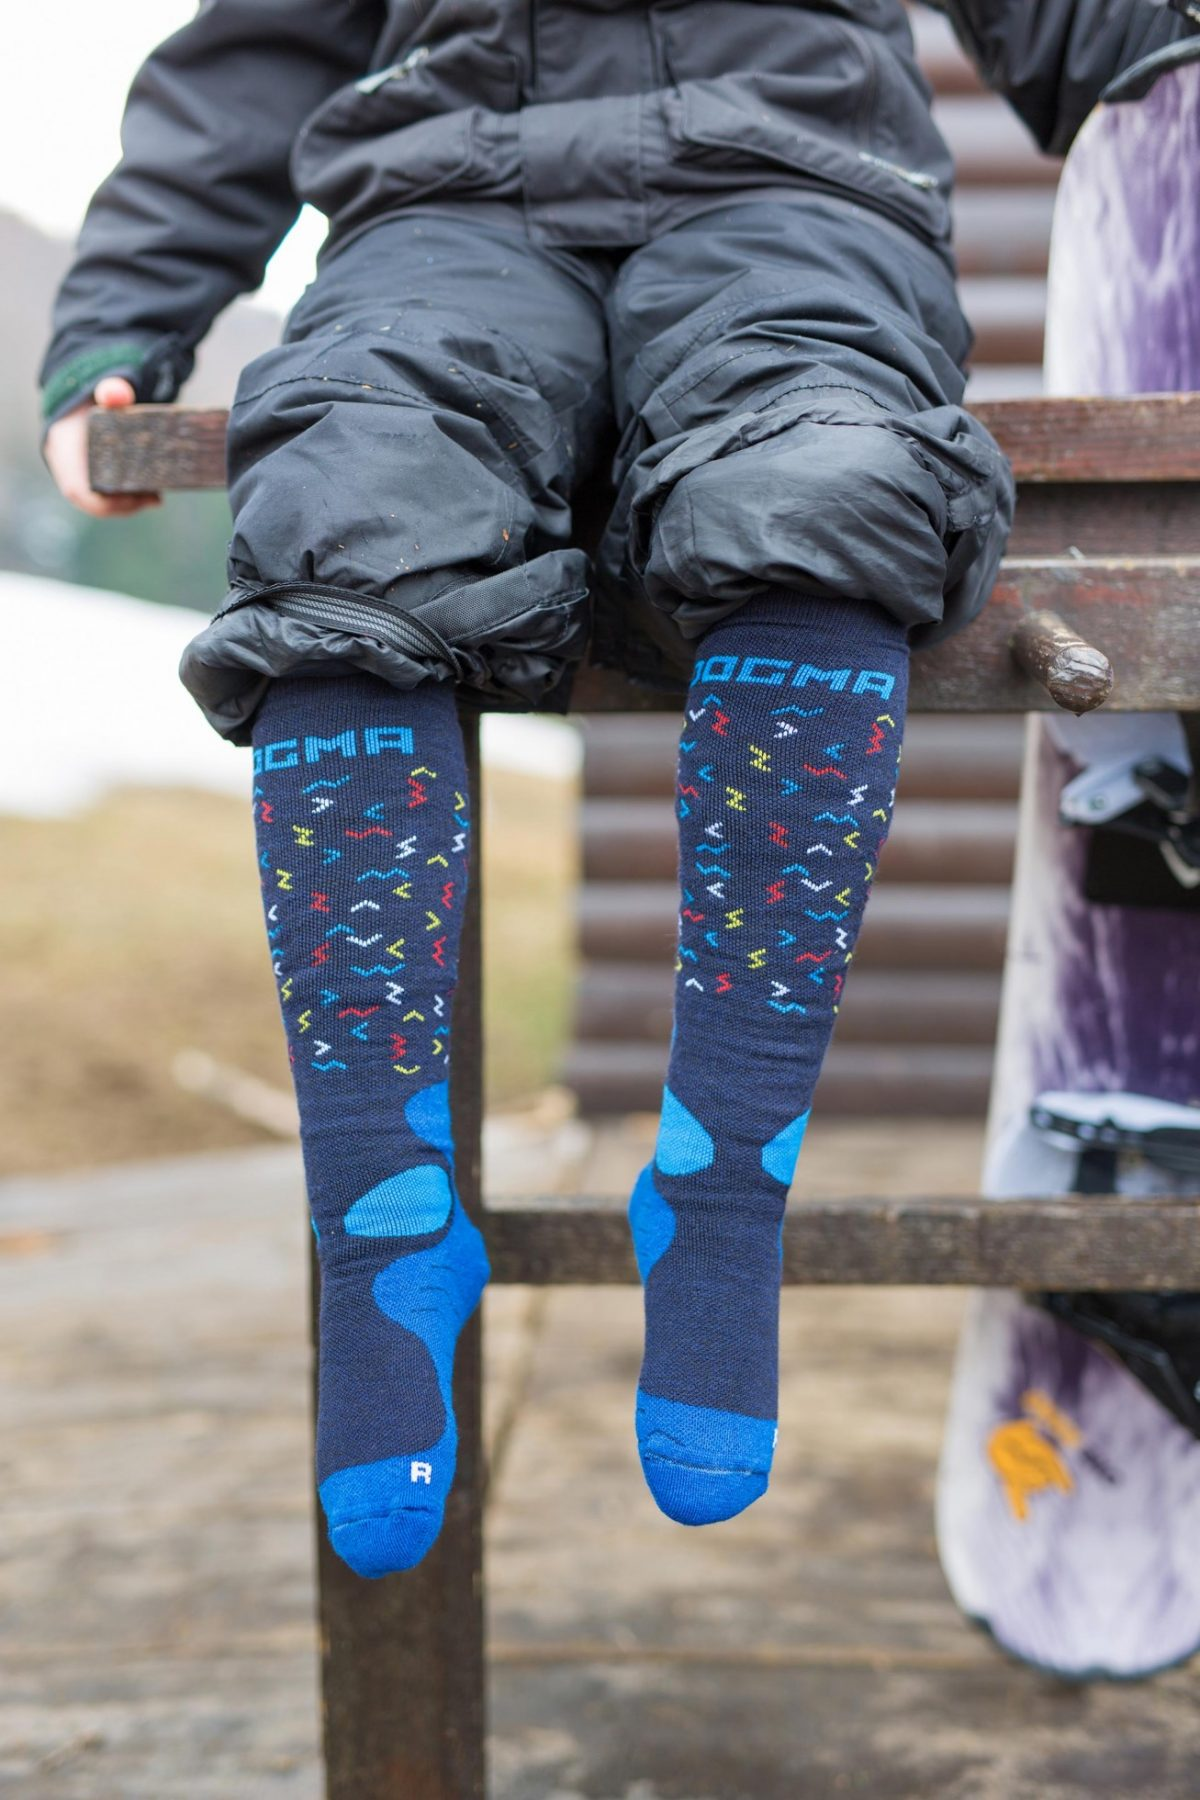 This picture is showing dogma snow fox junior socks for boys with worms design in blue